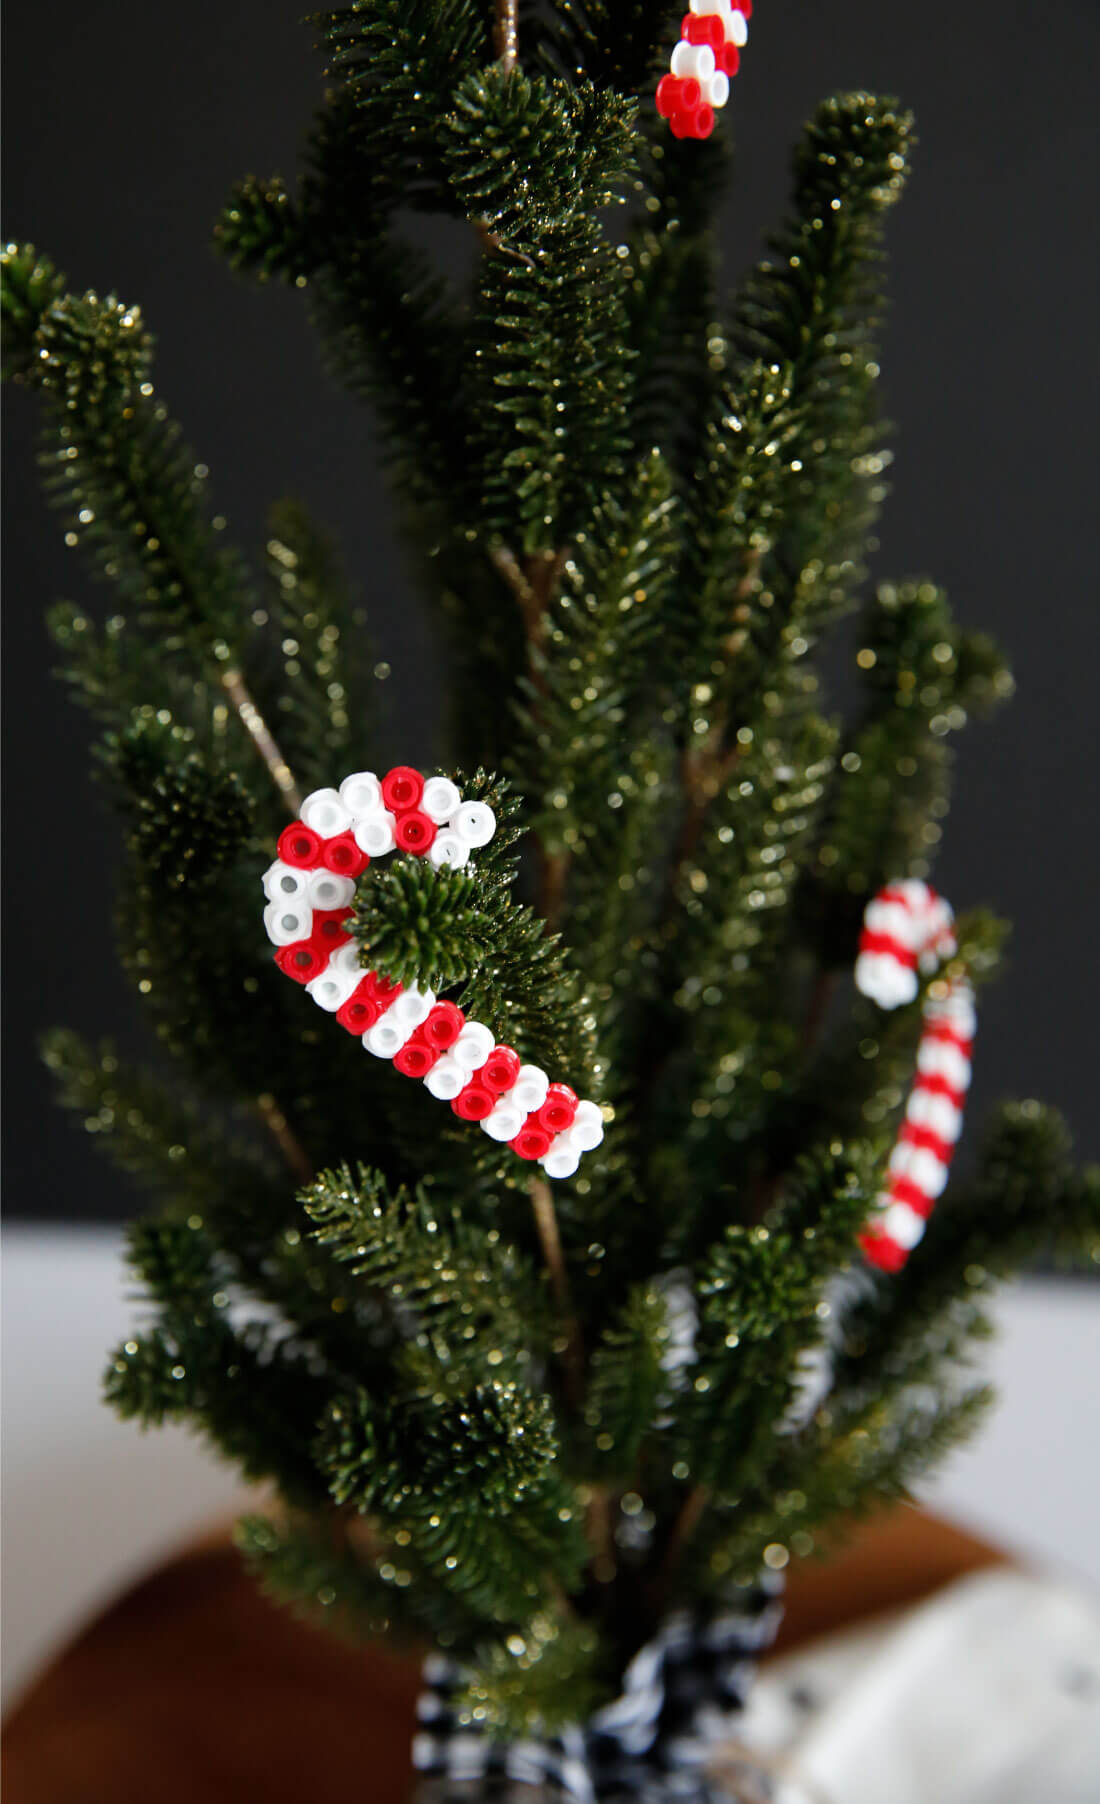 DIY Ornaments made with perler beads. Make these cute candy cane ornaments! These are super easy to make! from www.thirtyhandmadedays.com